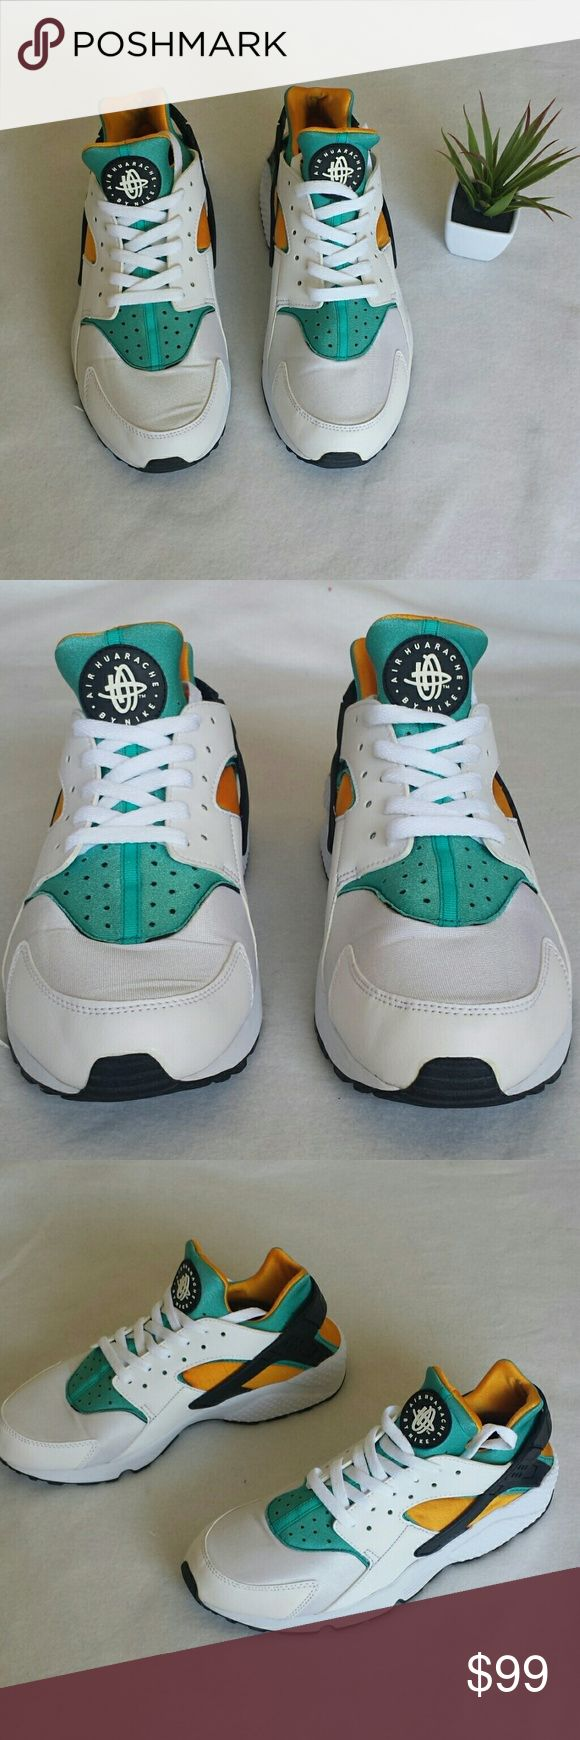 Men's Air Huarache White Yellow and Blue Mint condition Nike Shoes Sneakers